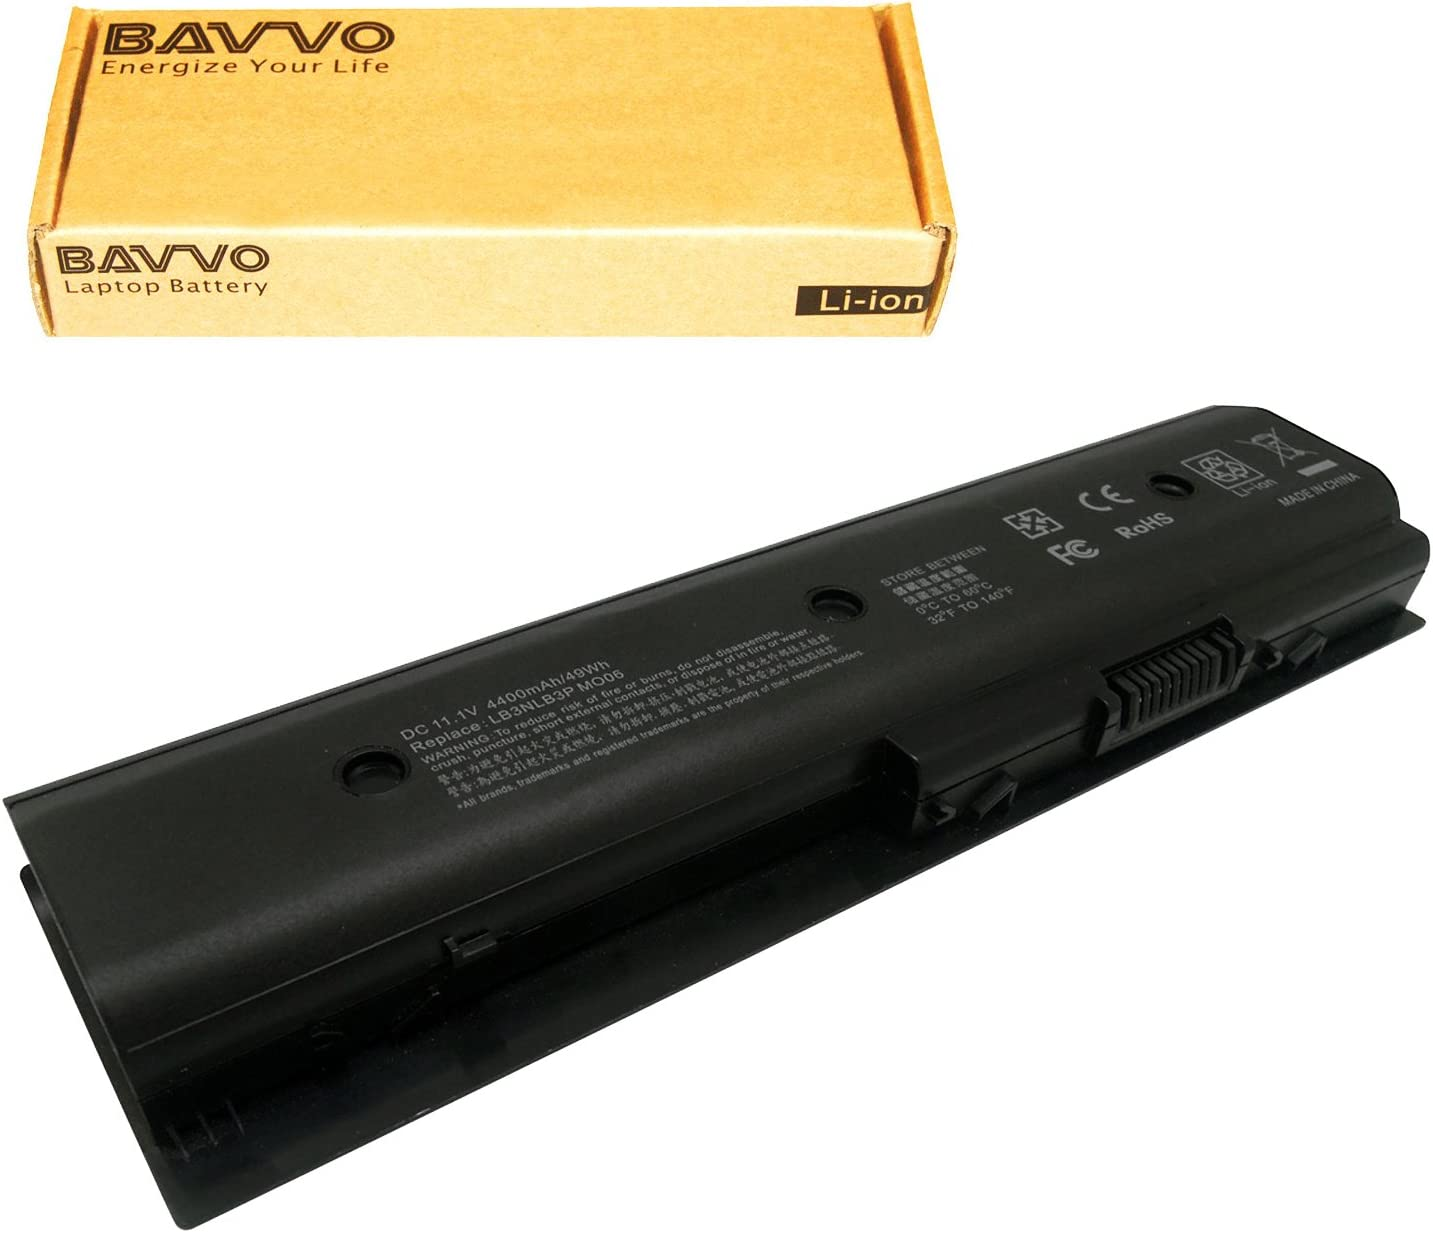 Bavvo Battery Compatible with Envy dv6-7210us